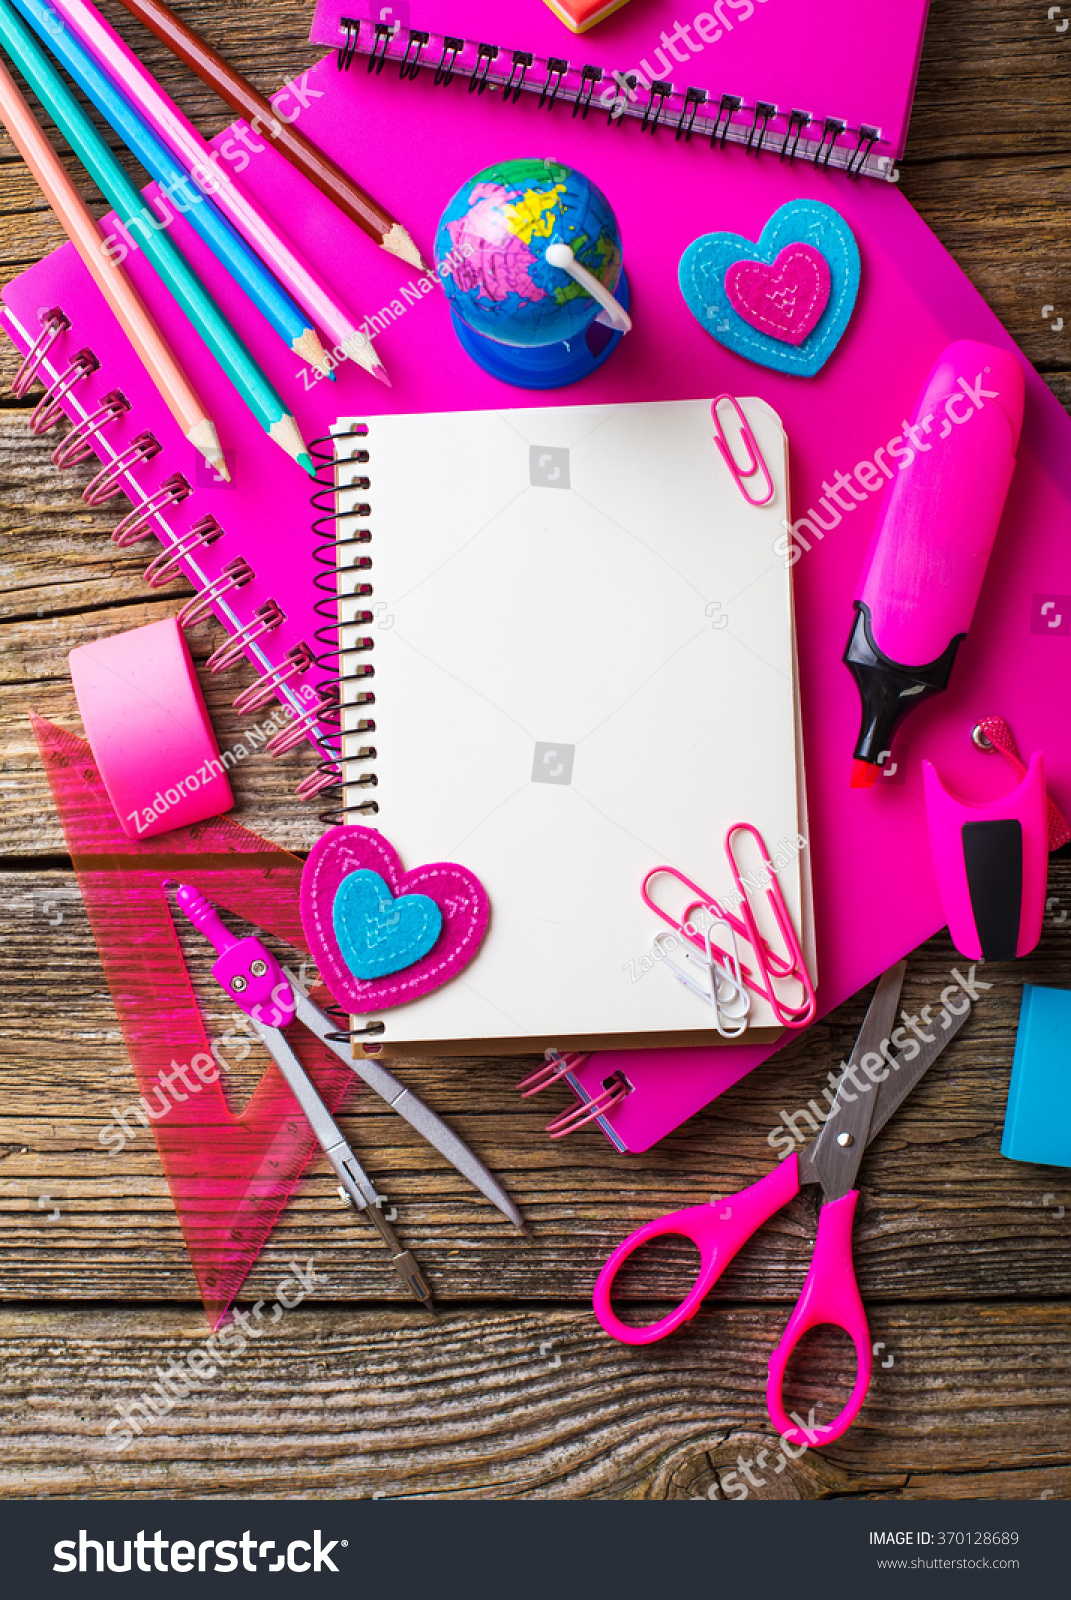 School Supplies Pink Color On Wooden Stock Photo